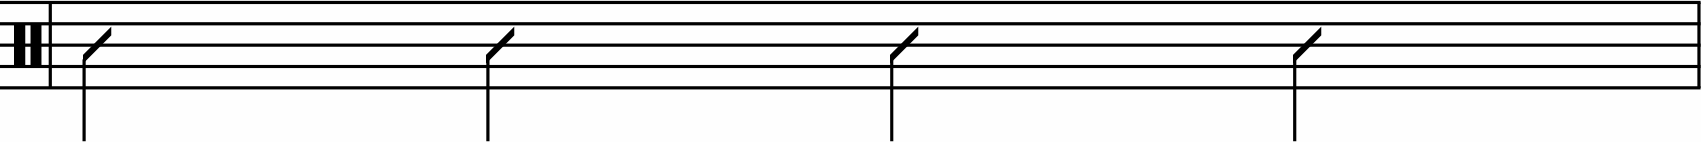 Quarter-note rhythm example.